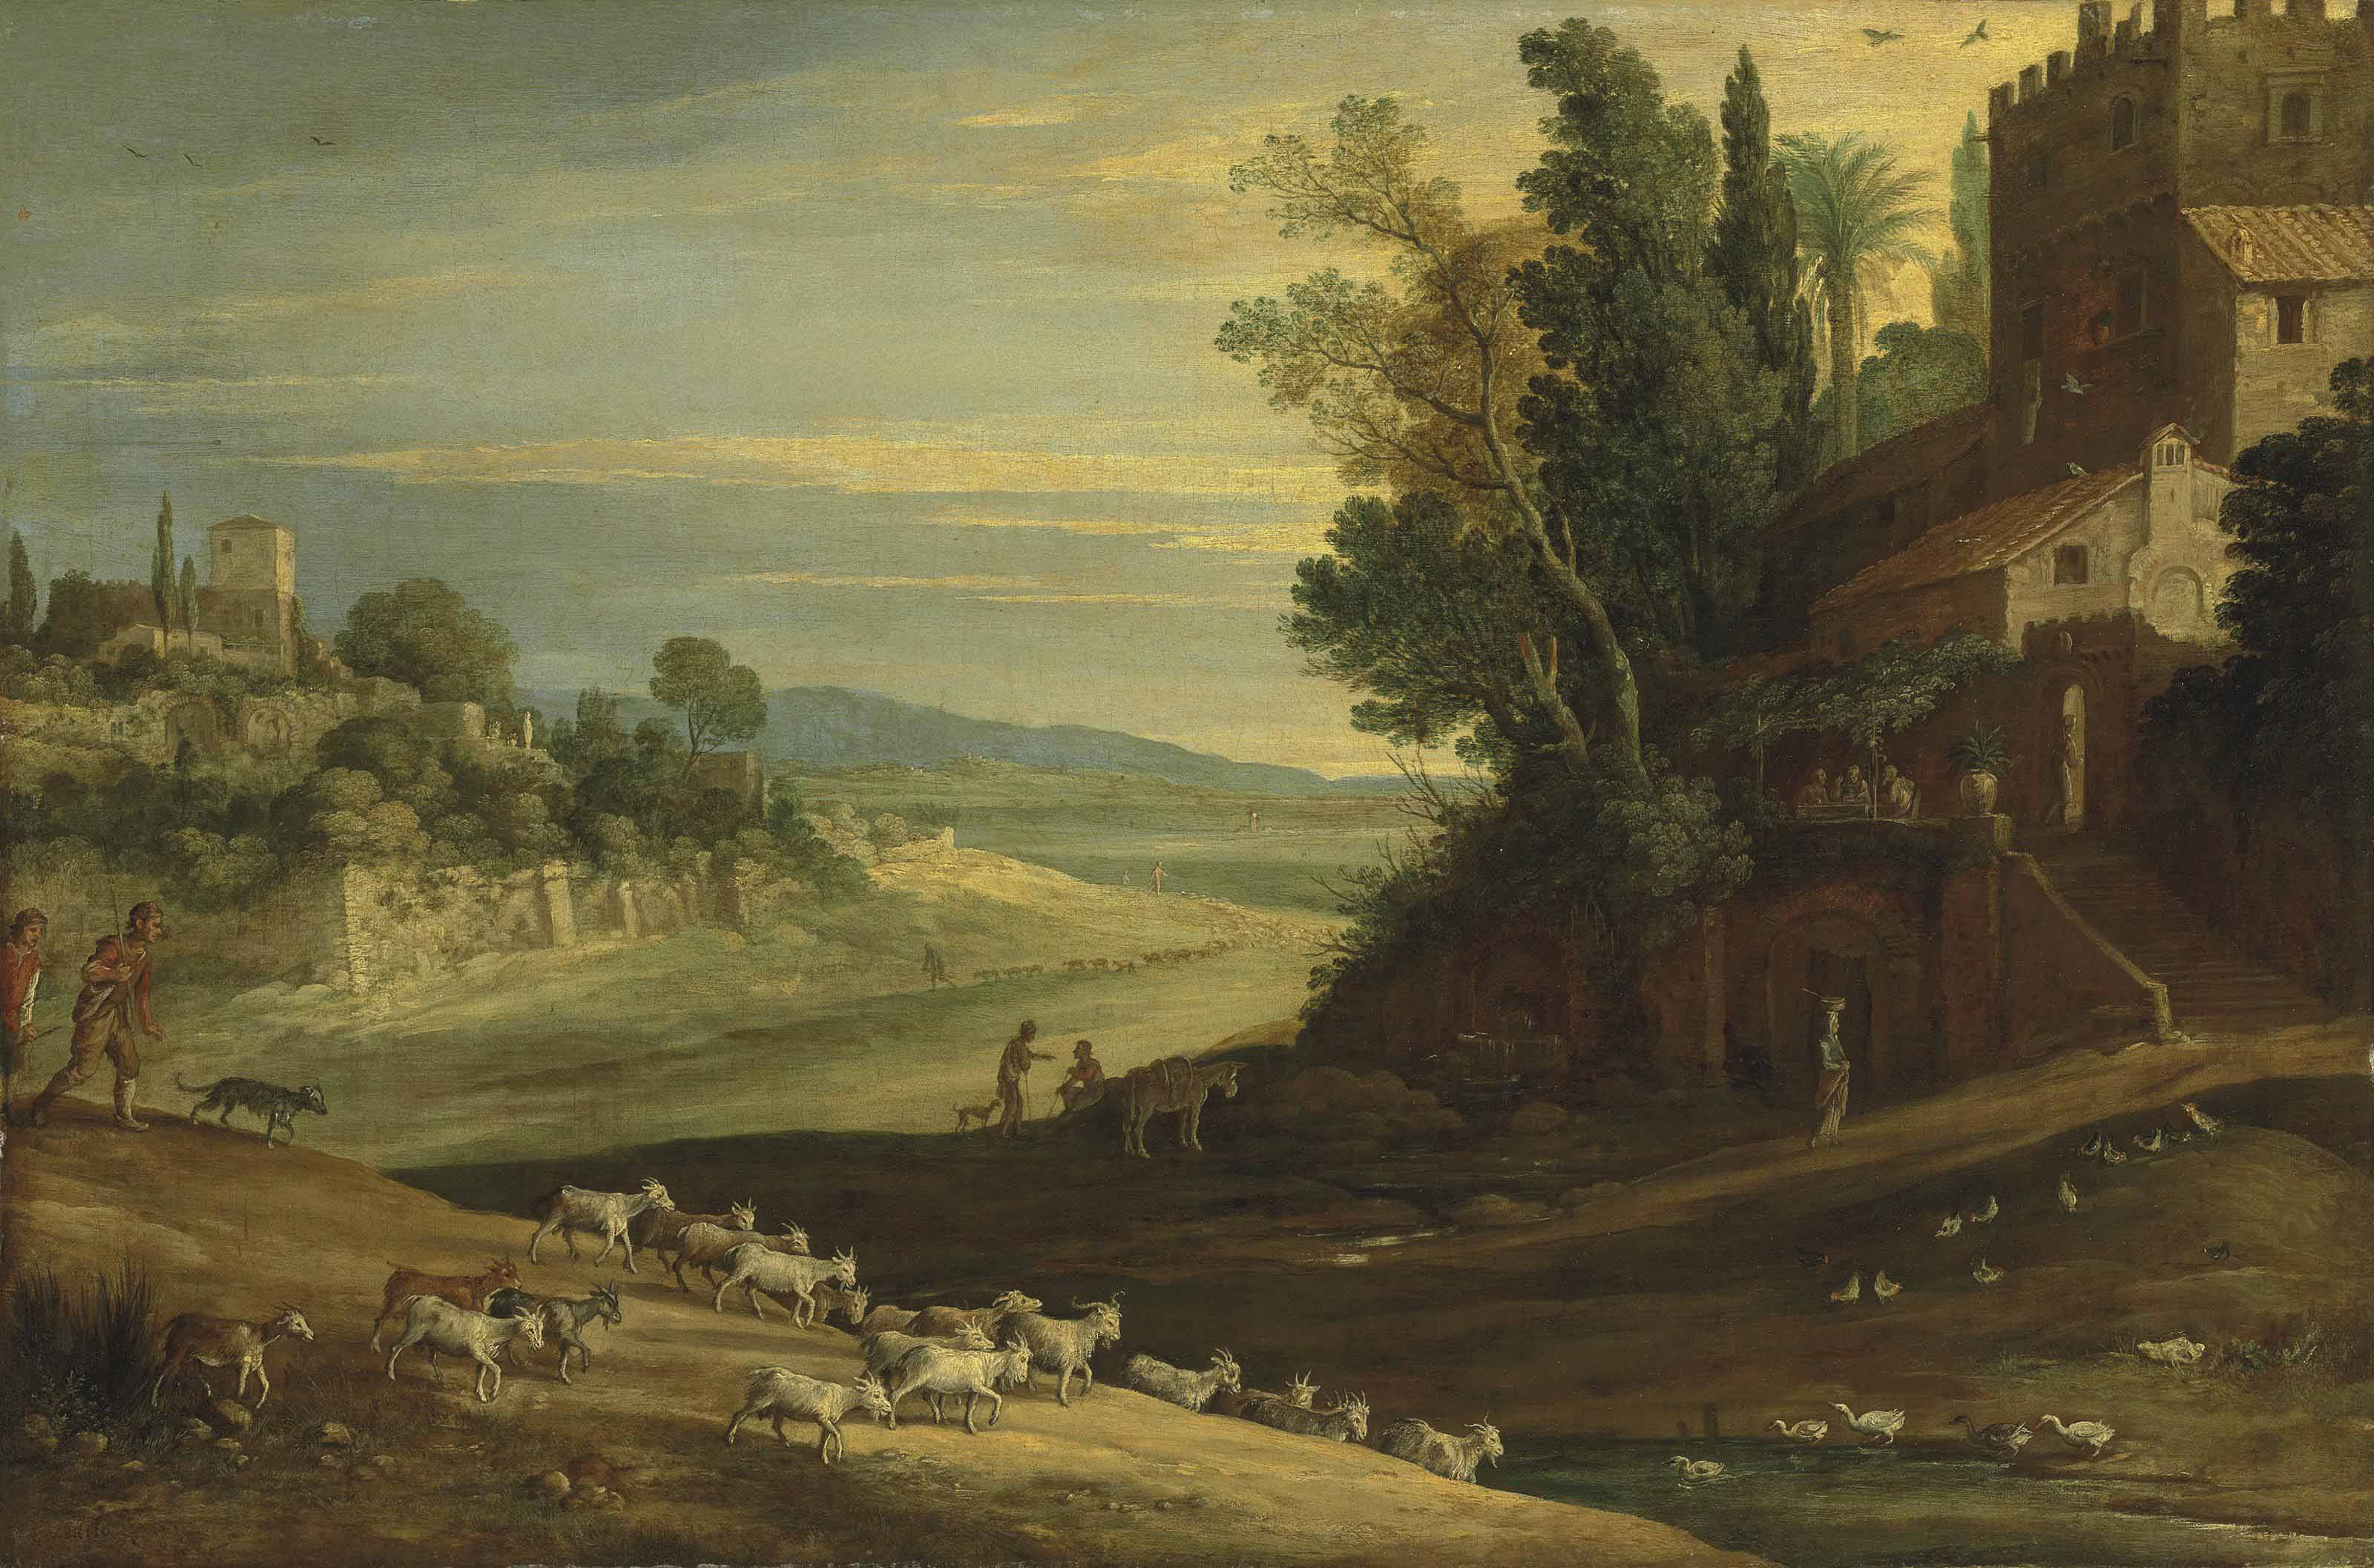 An extensive Italianate landscape with shepherds watering their flocks by a stream, with Jesus and two Disciples at Emmaus